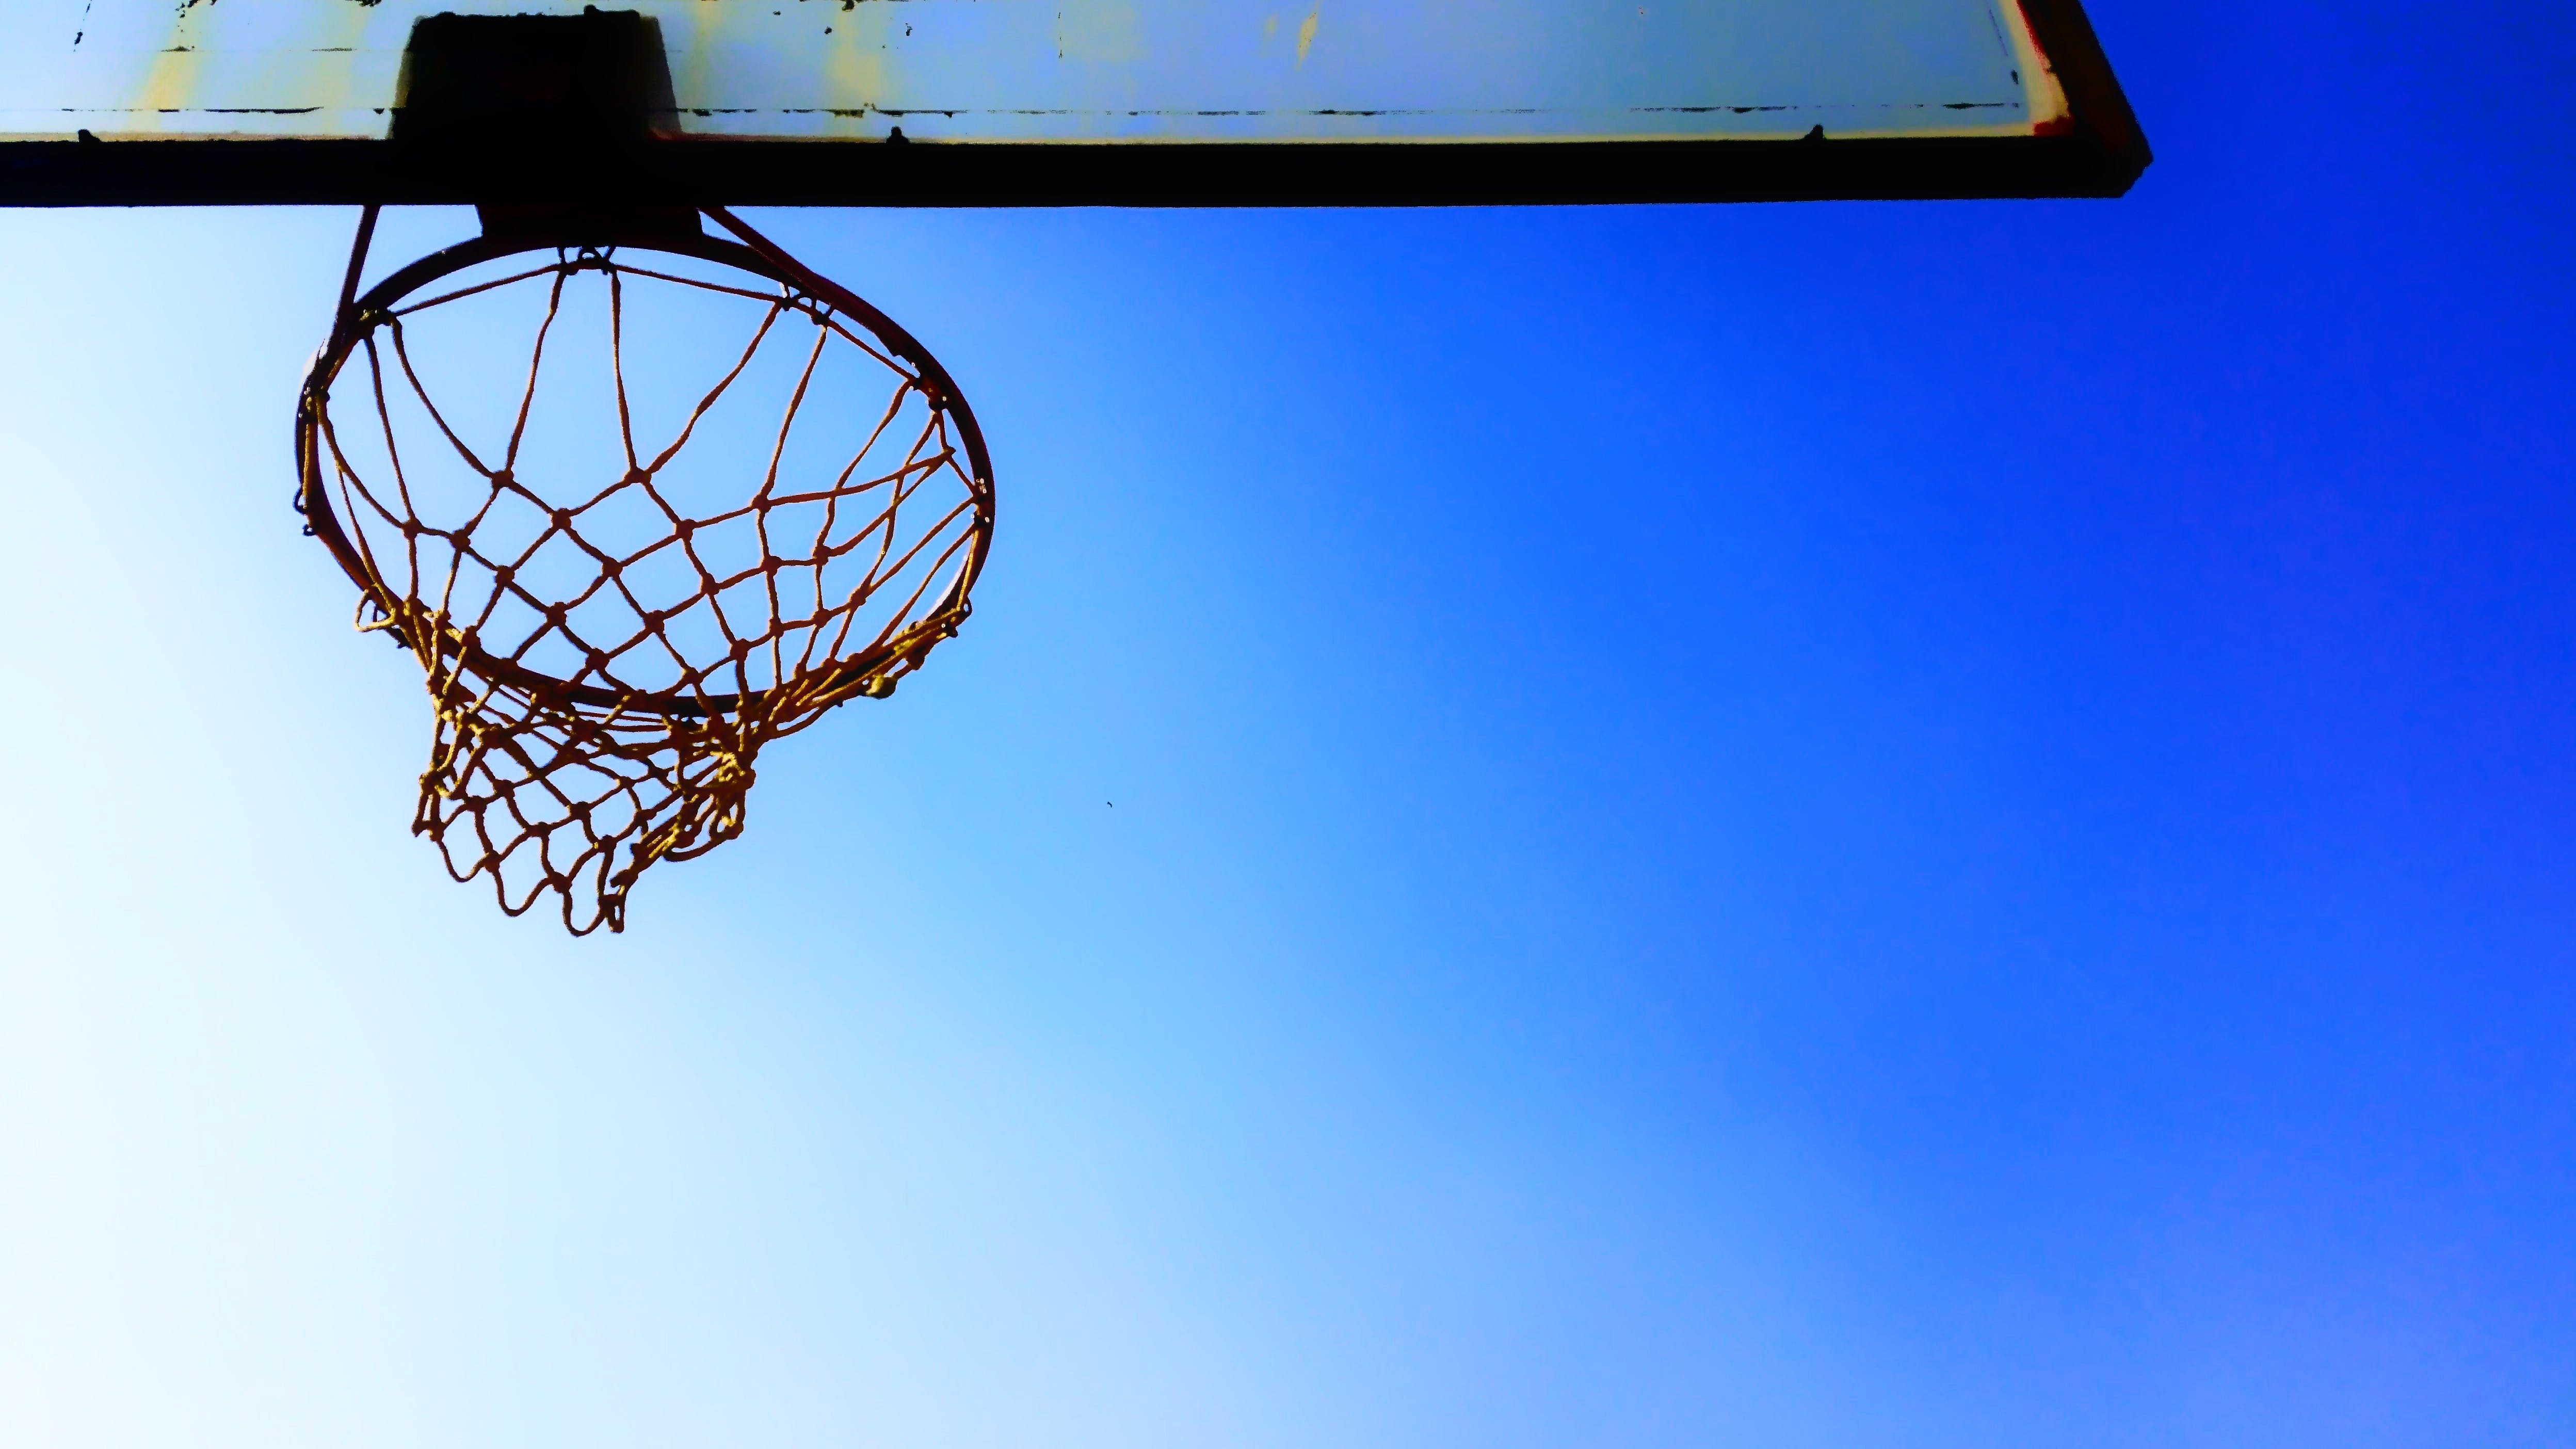 Low Angle Photography of Basketball Ring